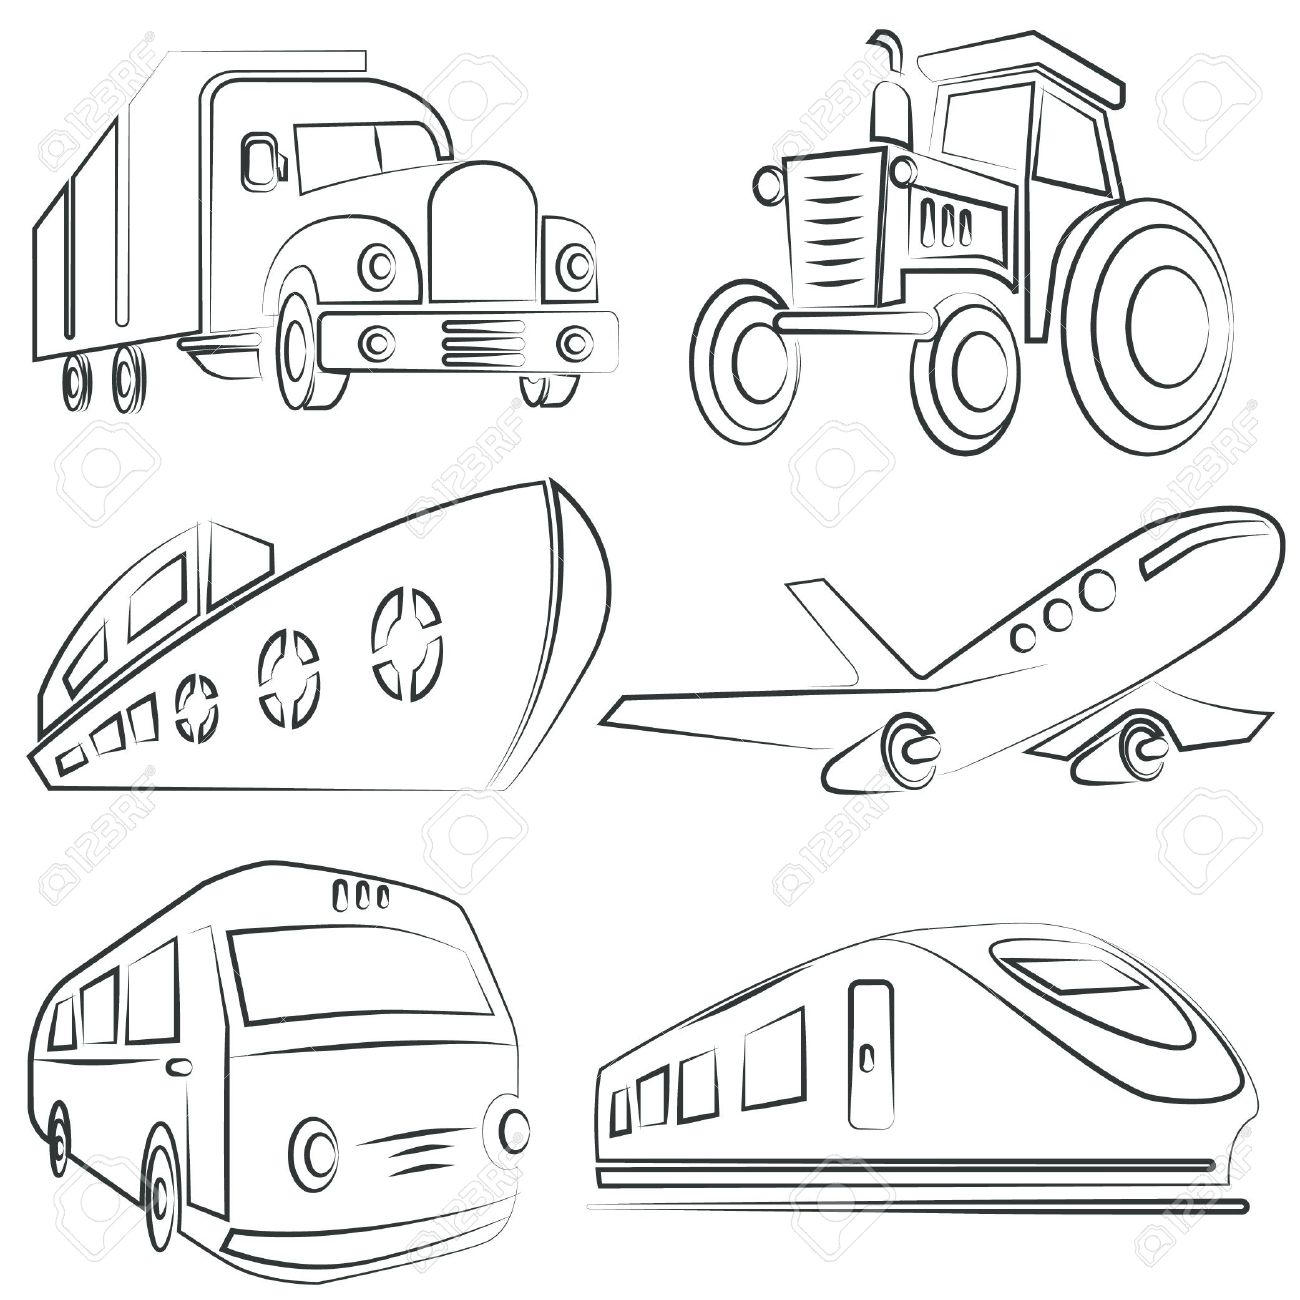 Sketched Car Truck Set Transportation Royalty Free Cliparts